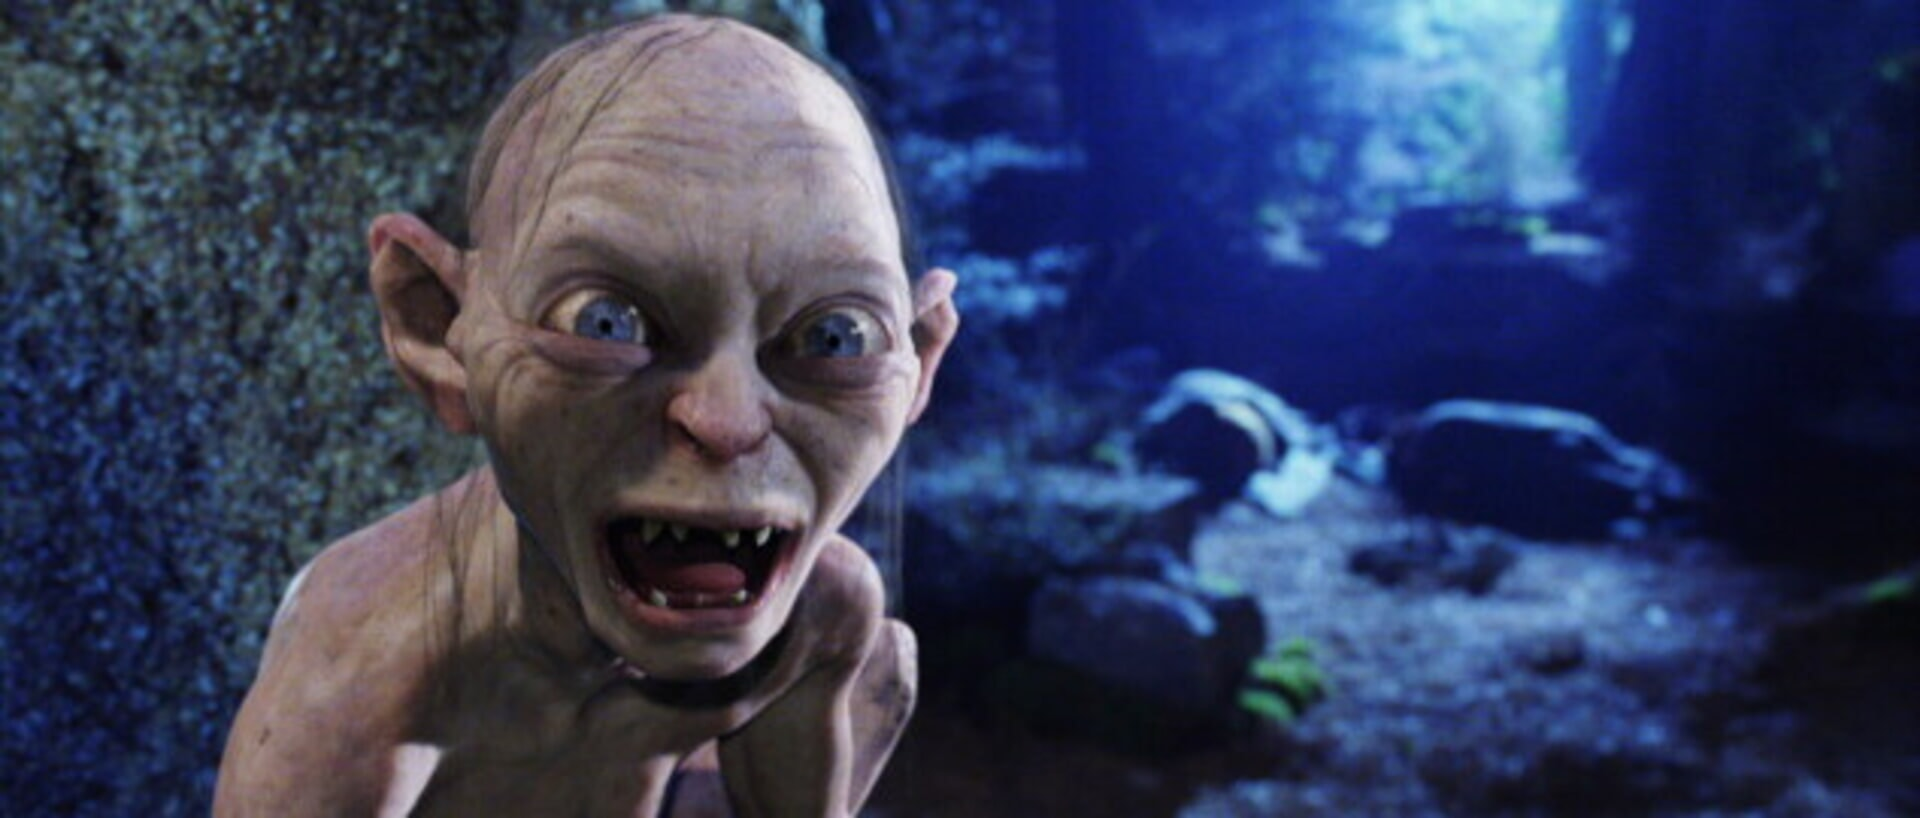 The Lord of the Rings: The Two Towers - Image 13